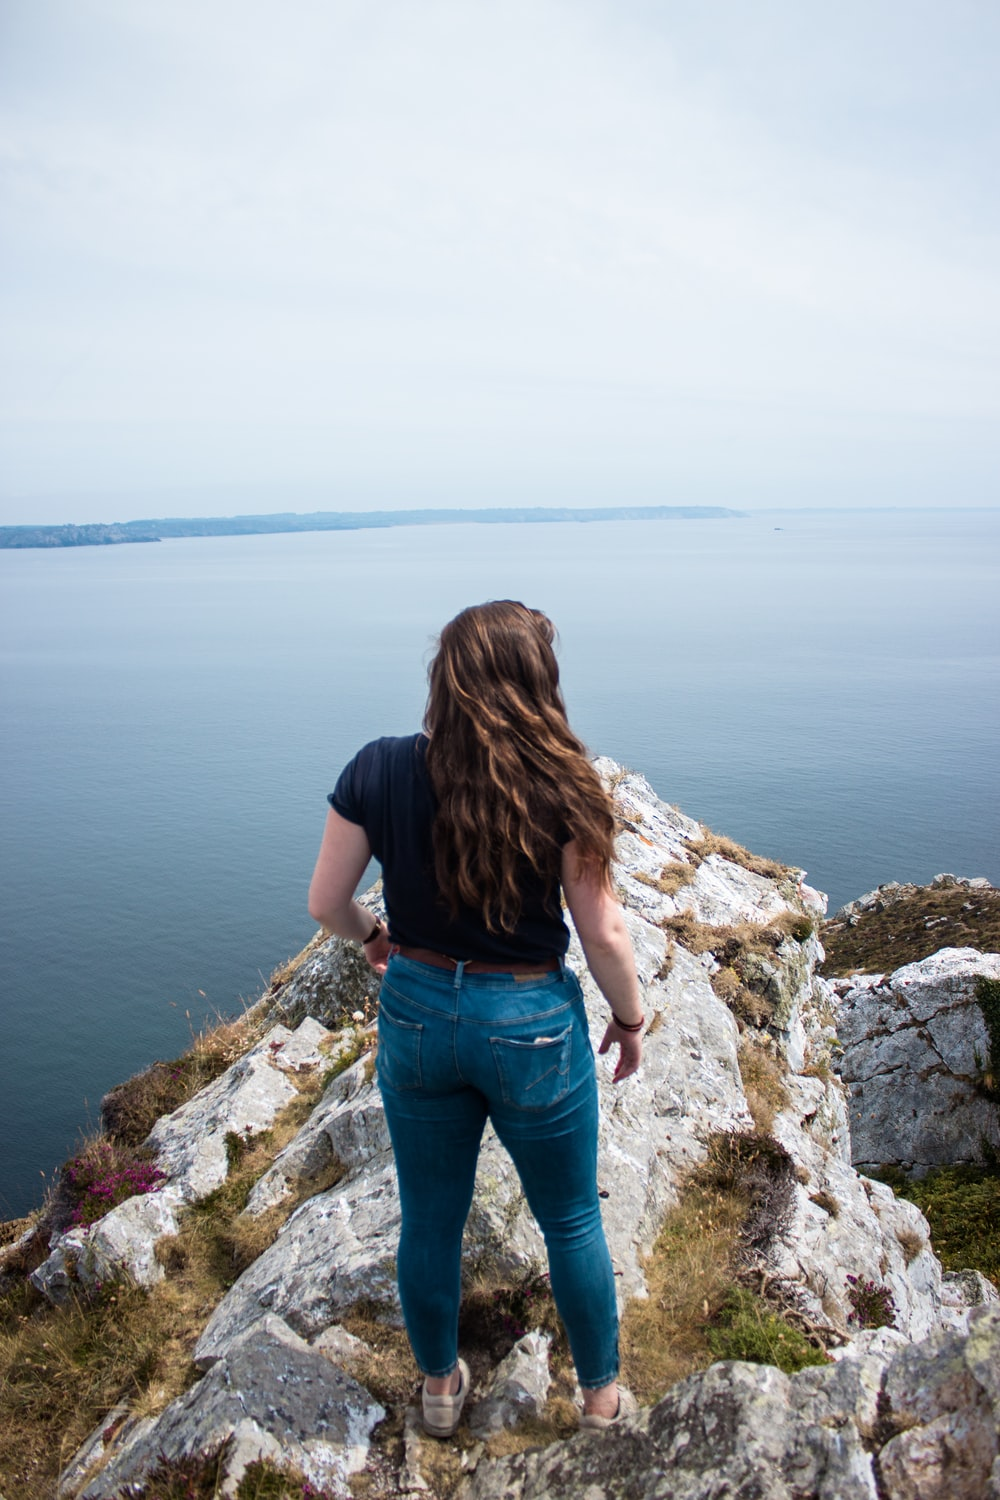 woman wearing black shirt and blue denim jeans standing on rock